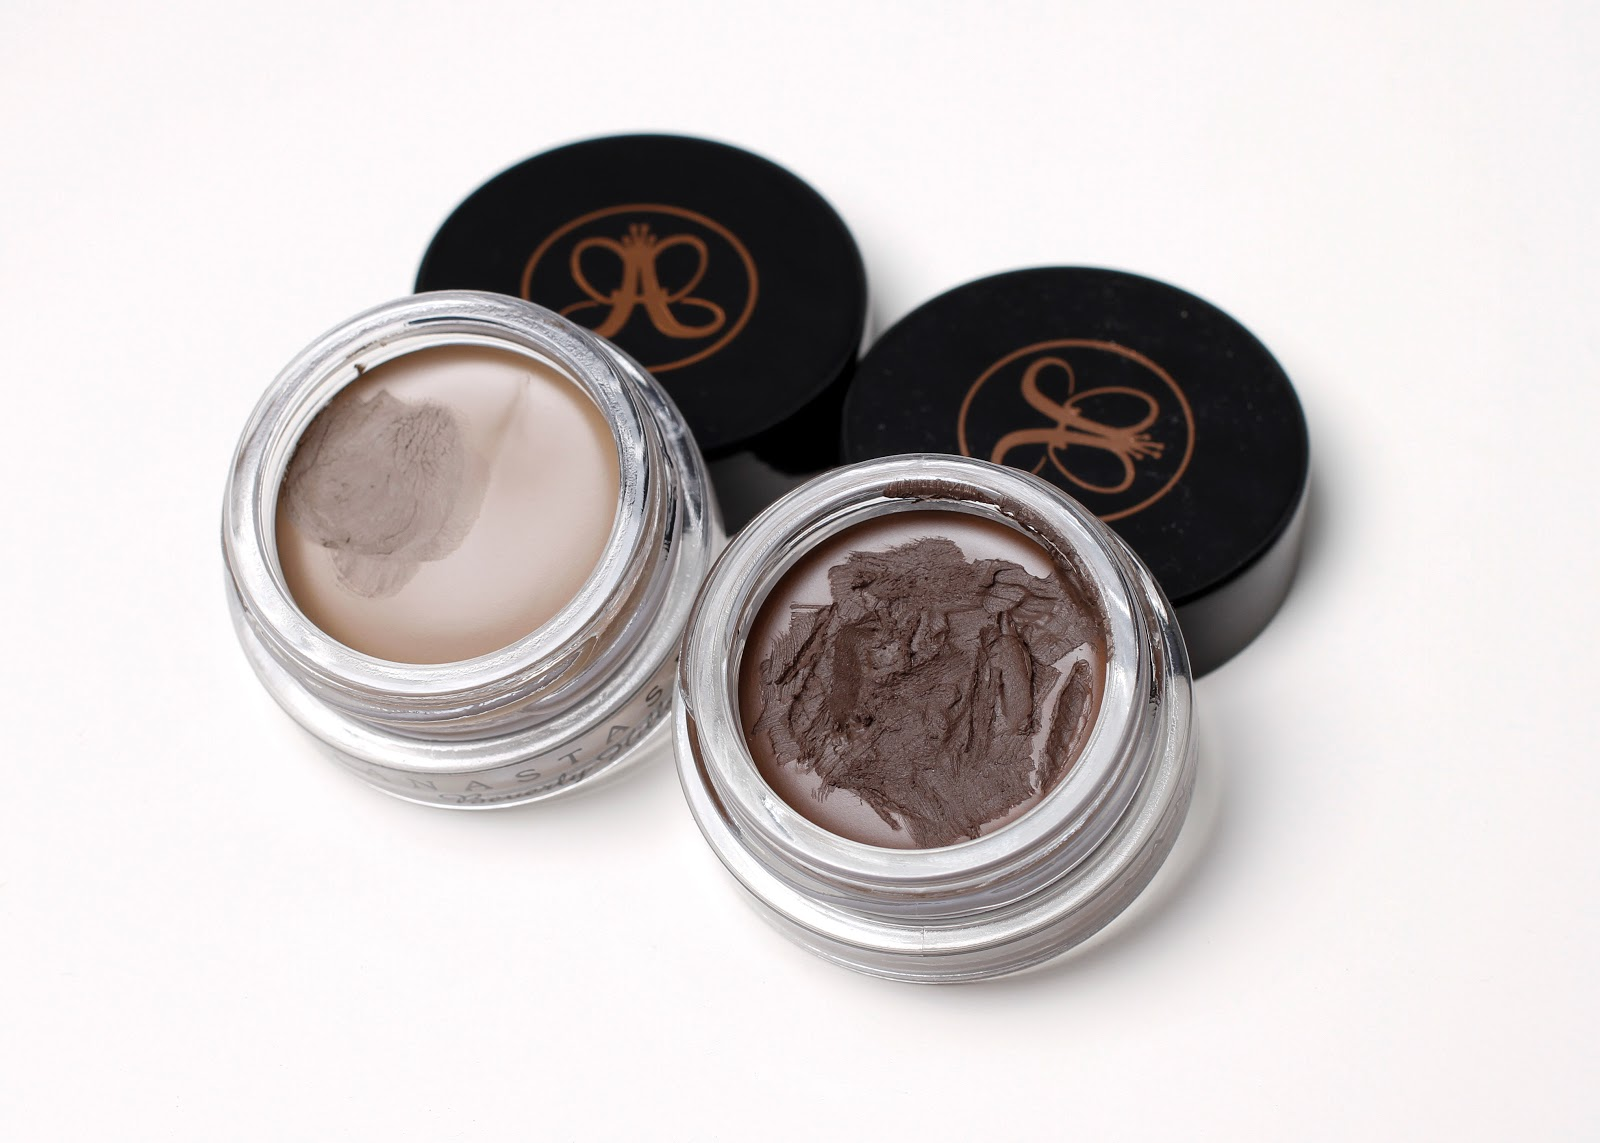 opened dipbrow in dark brown and taupe